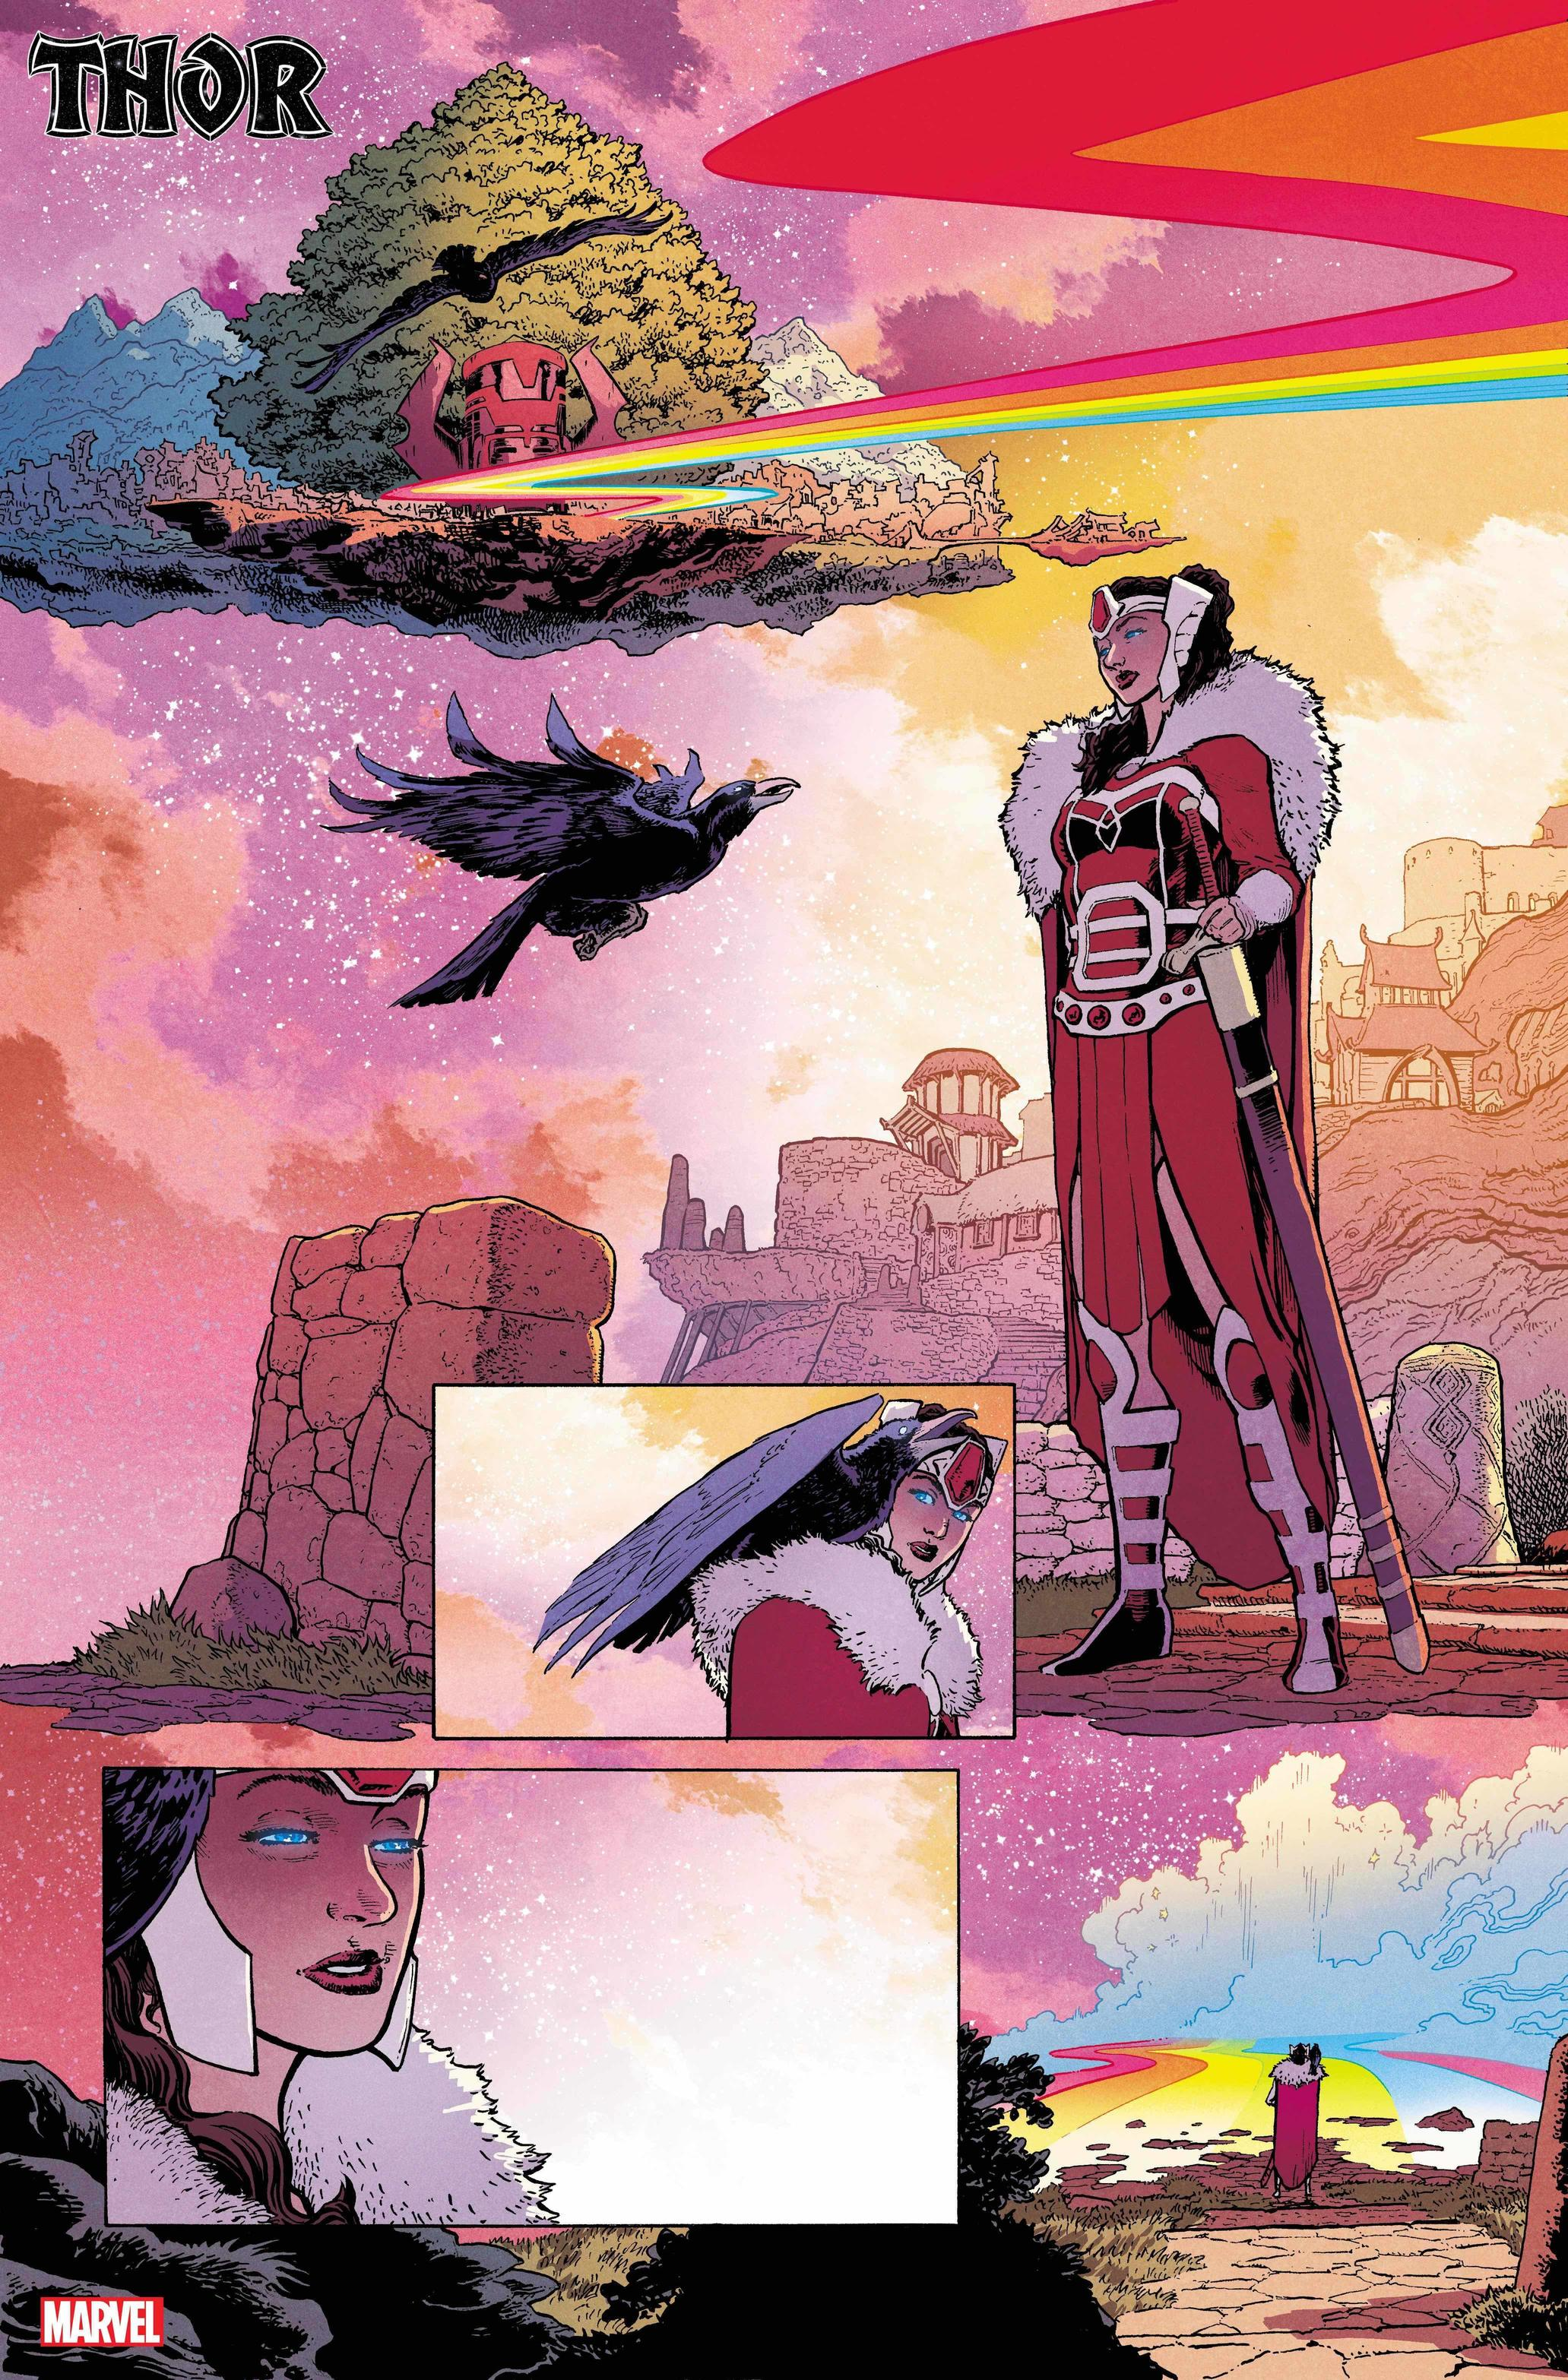 THOR #7 preview interiors by Aaron Kuder and Matt Wilson